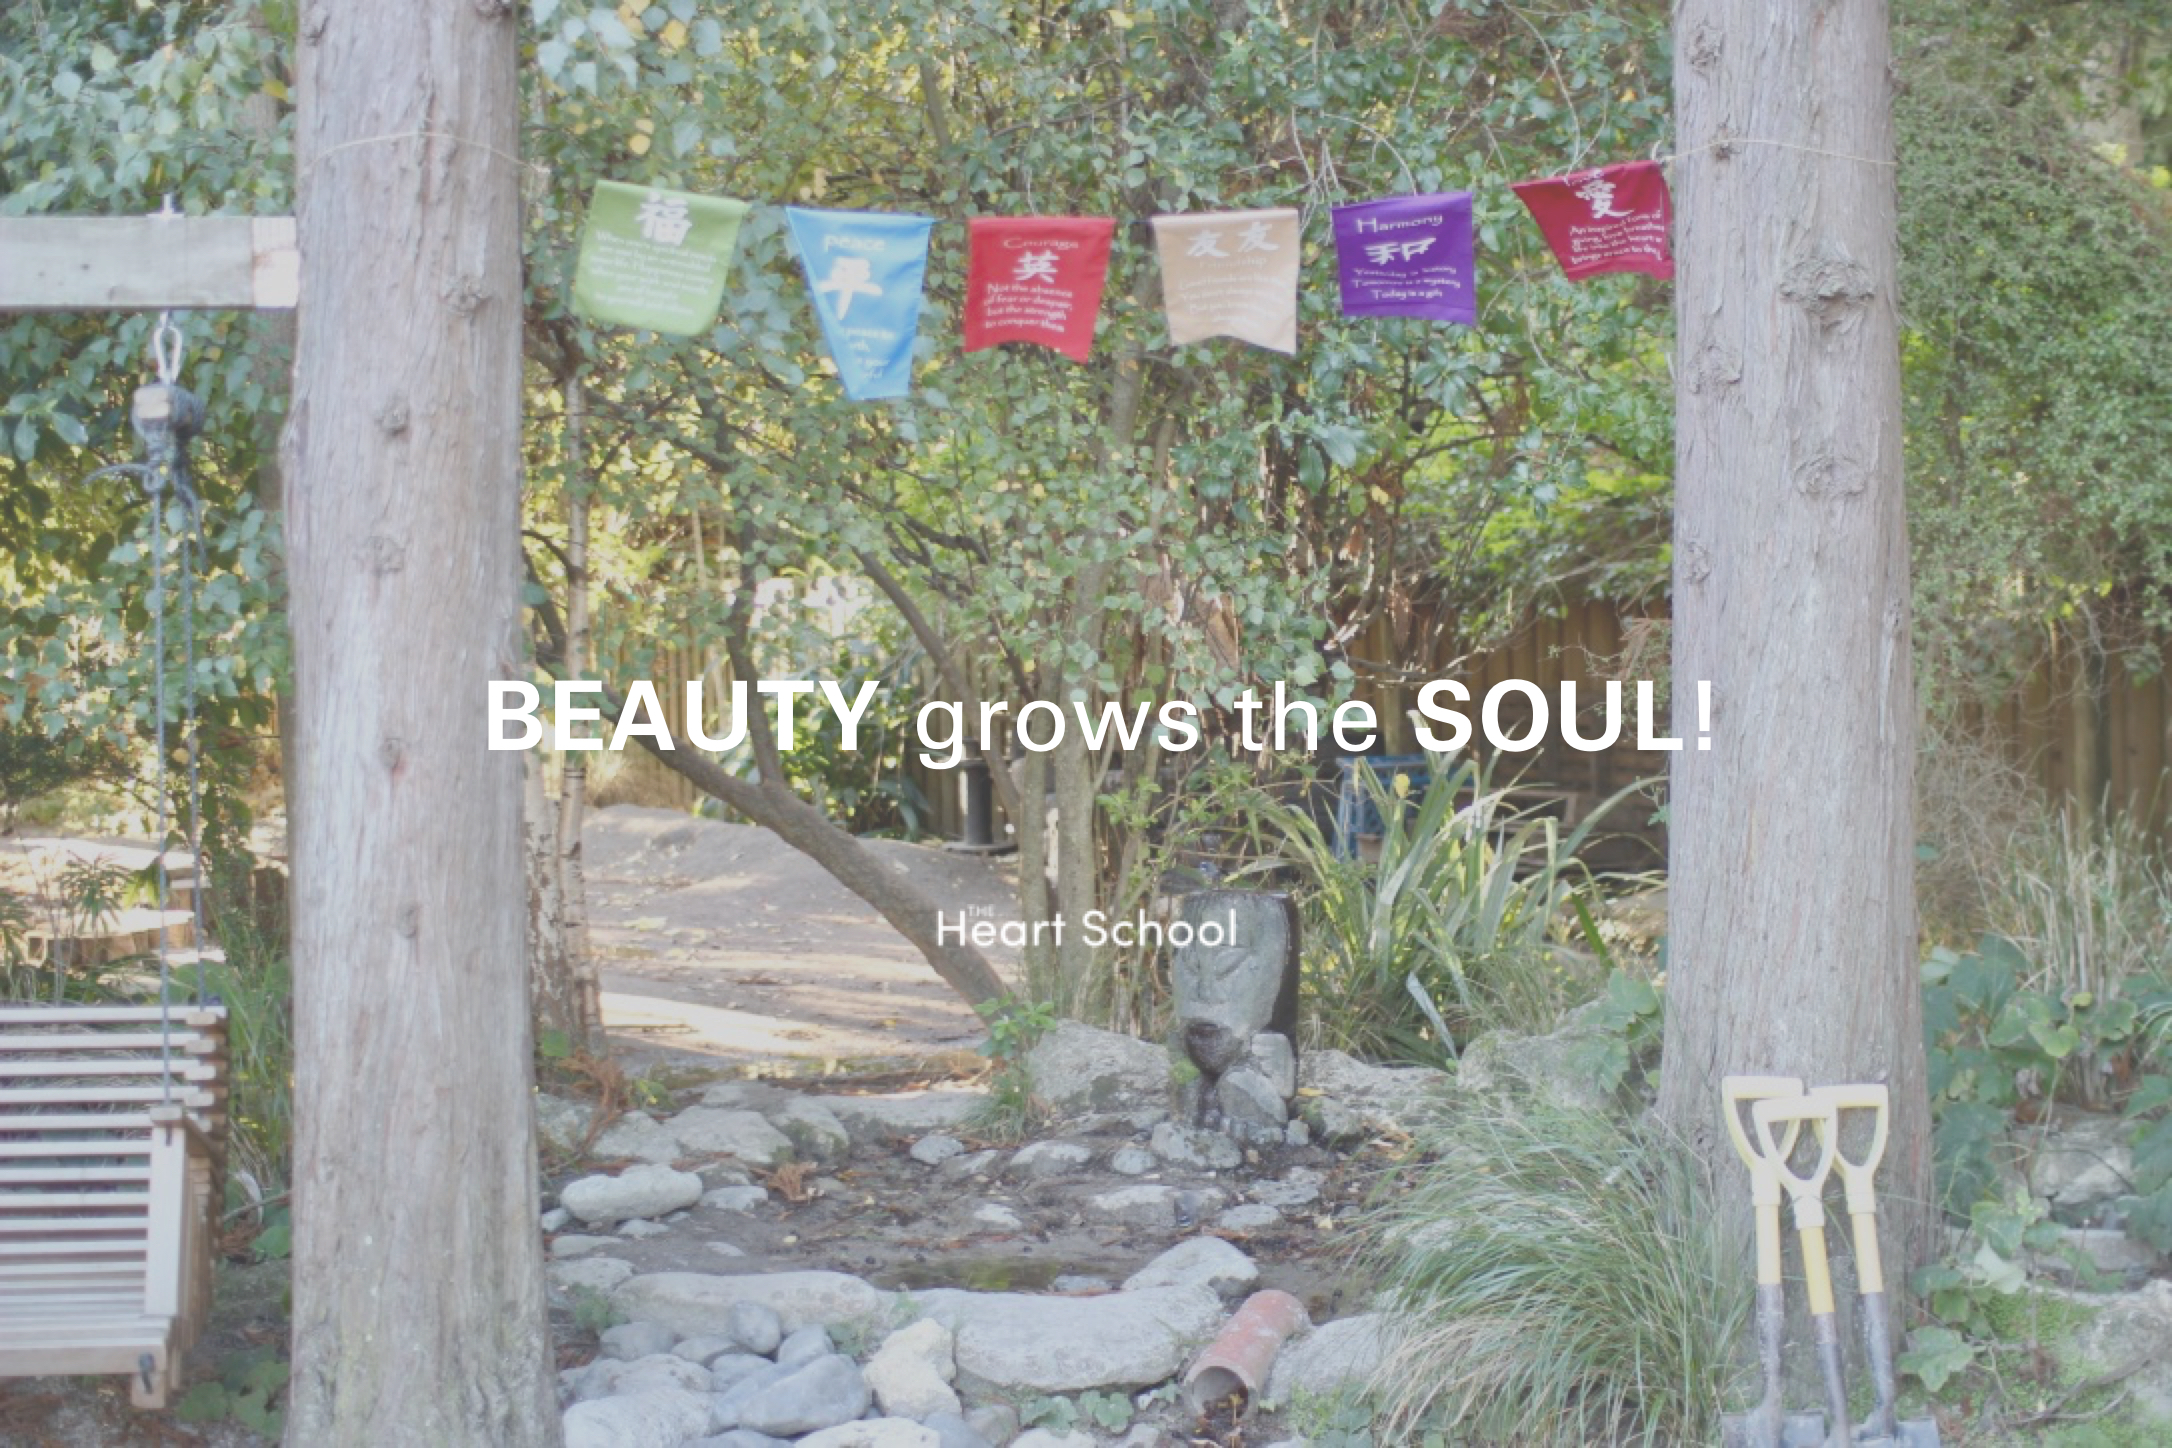 """""""The only lasting beauty is the beauty of the heart"""" - Rumi  It is not our words that are important for children - they learn from their environment, from who we are and what they see us do. A beautiful environment naturally encourages care and respect, even without a word said."""